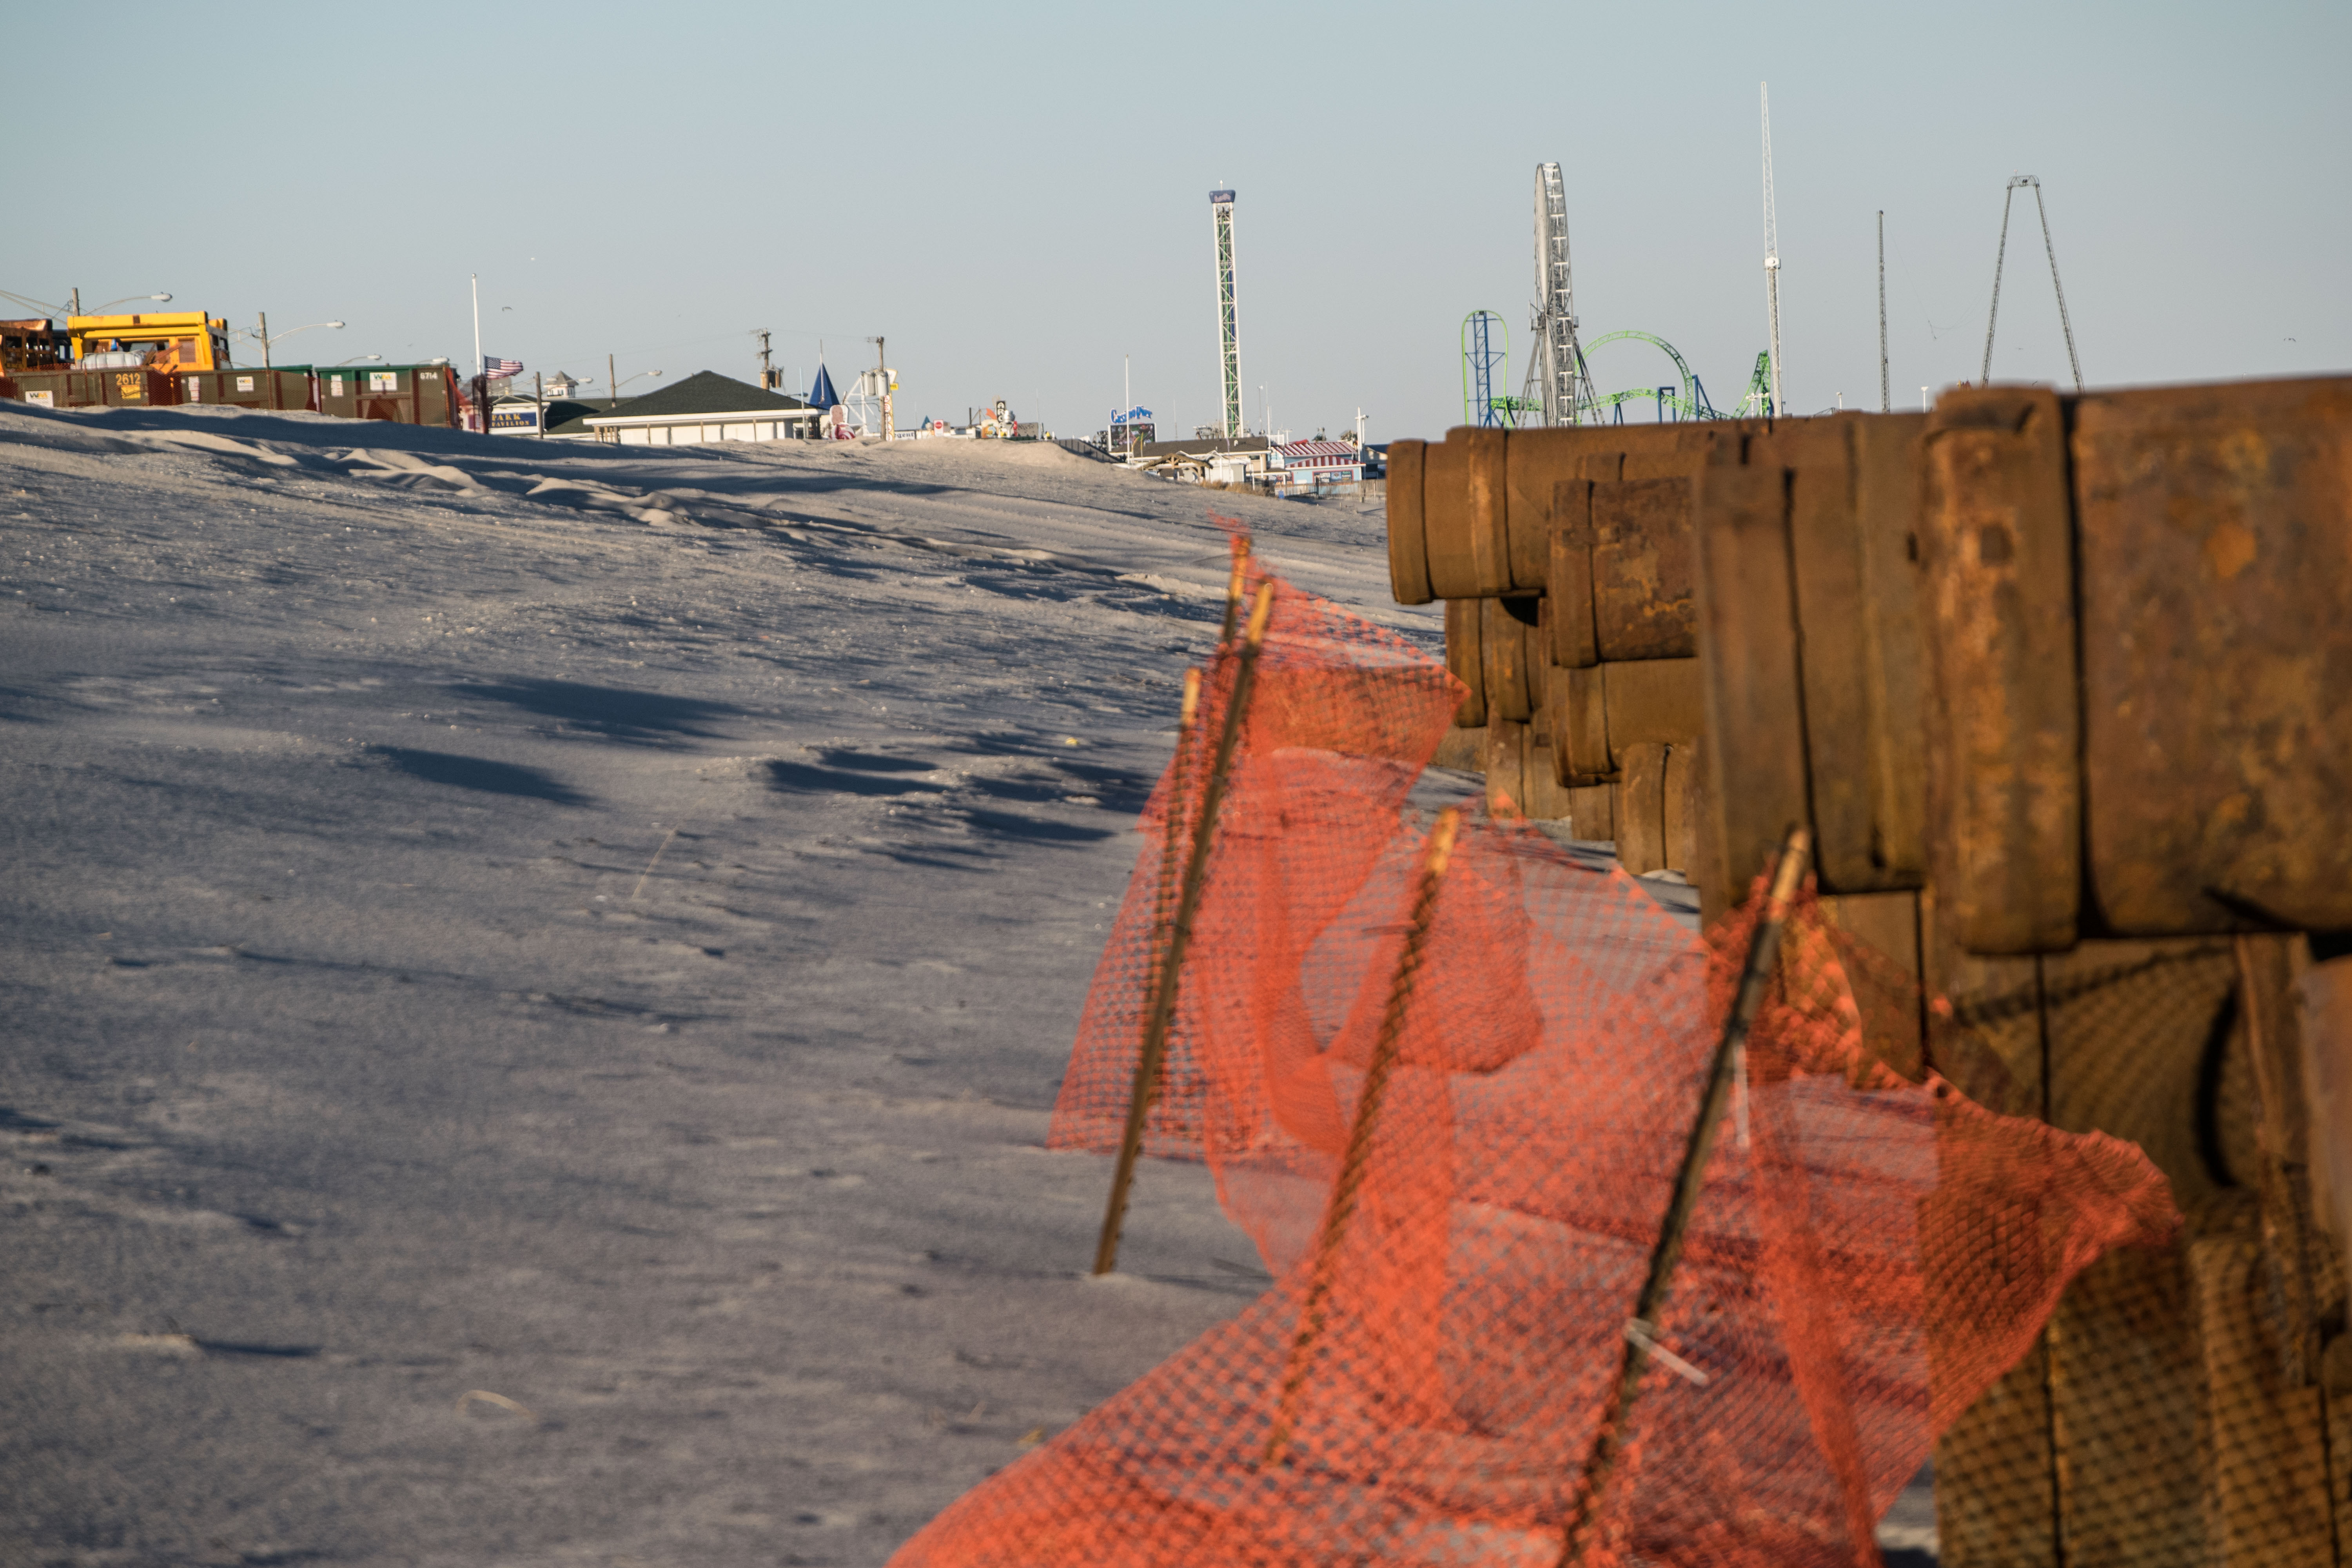 Equipment on the beach in Seaside Park as replenishment work is about to restart, Dec. 18, 2018. (Photo: Daniel Nee)